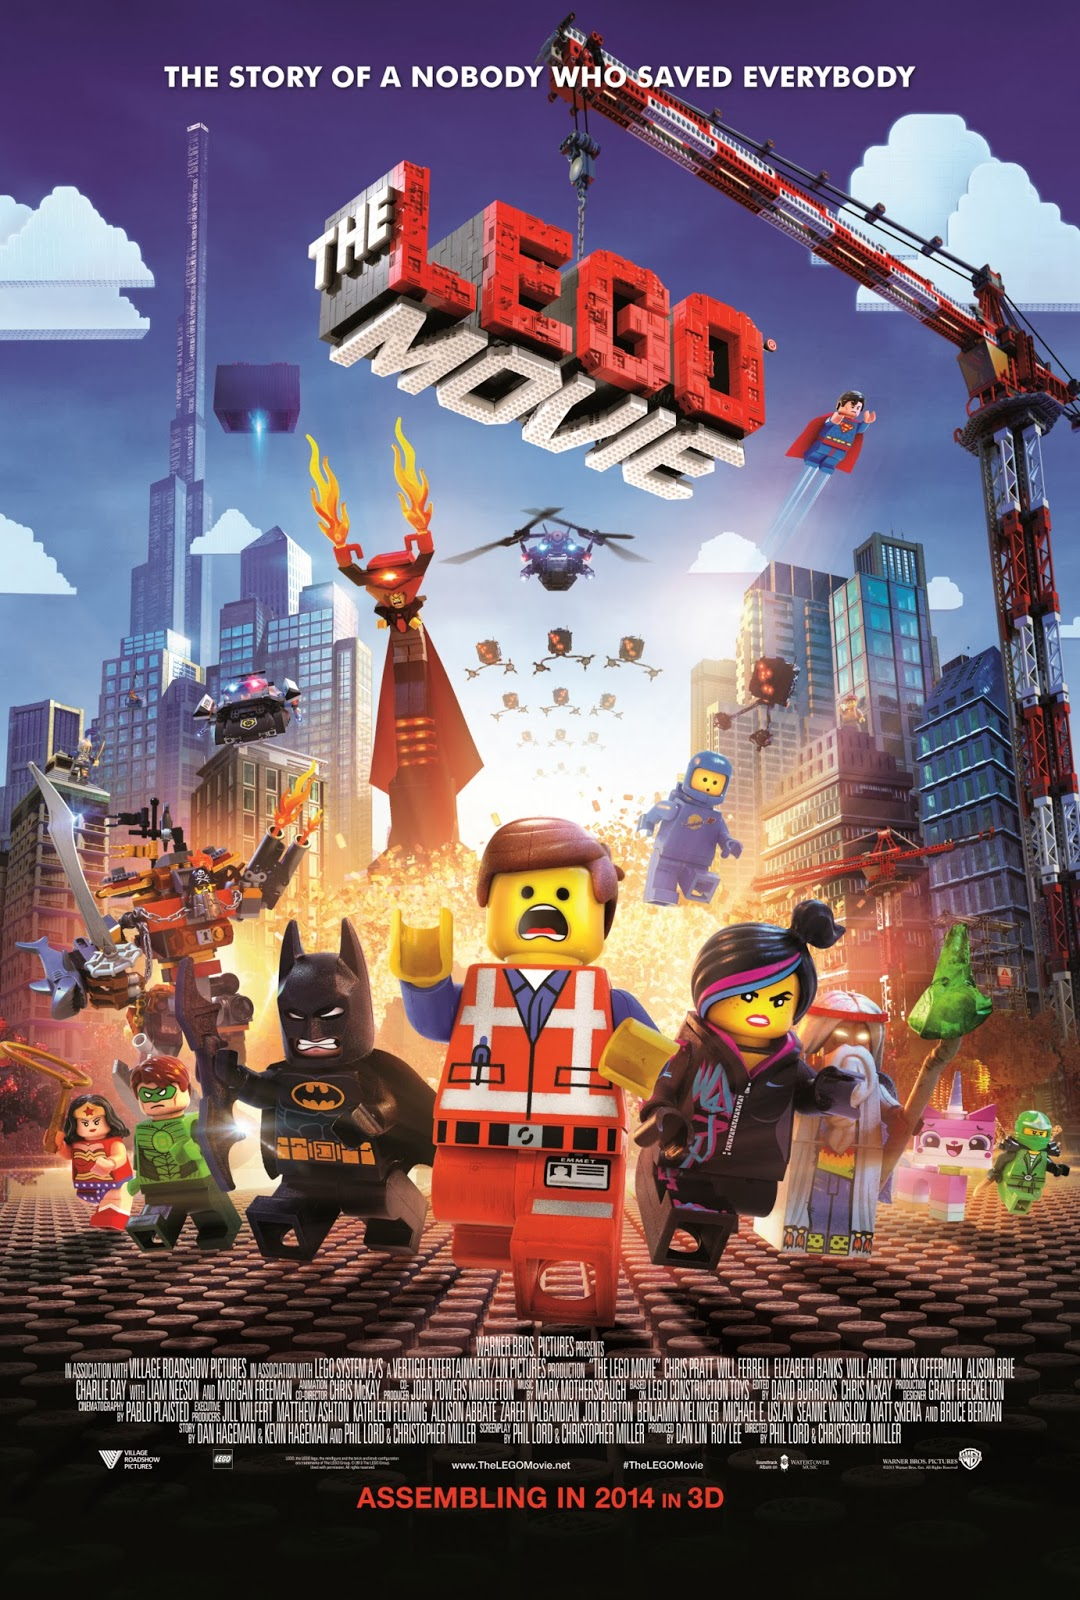 Movie stills & posters: THE LEGO MOVIE ...